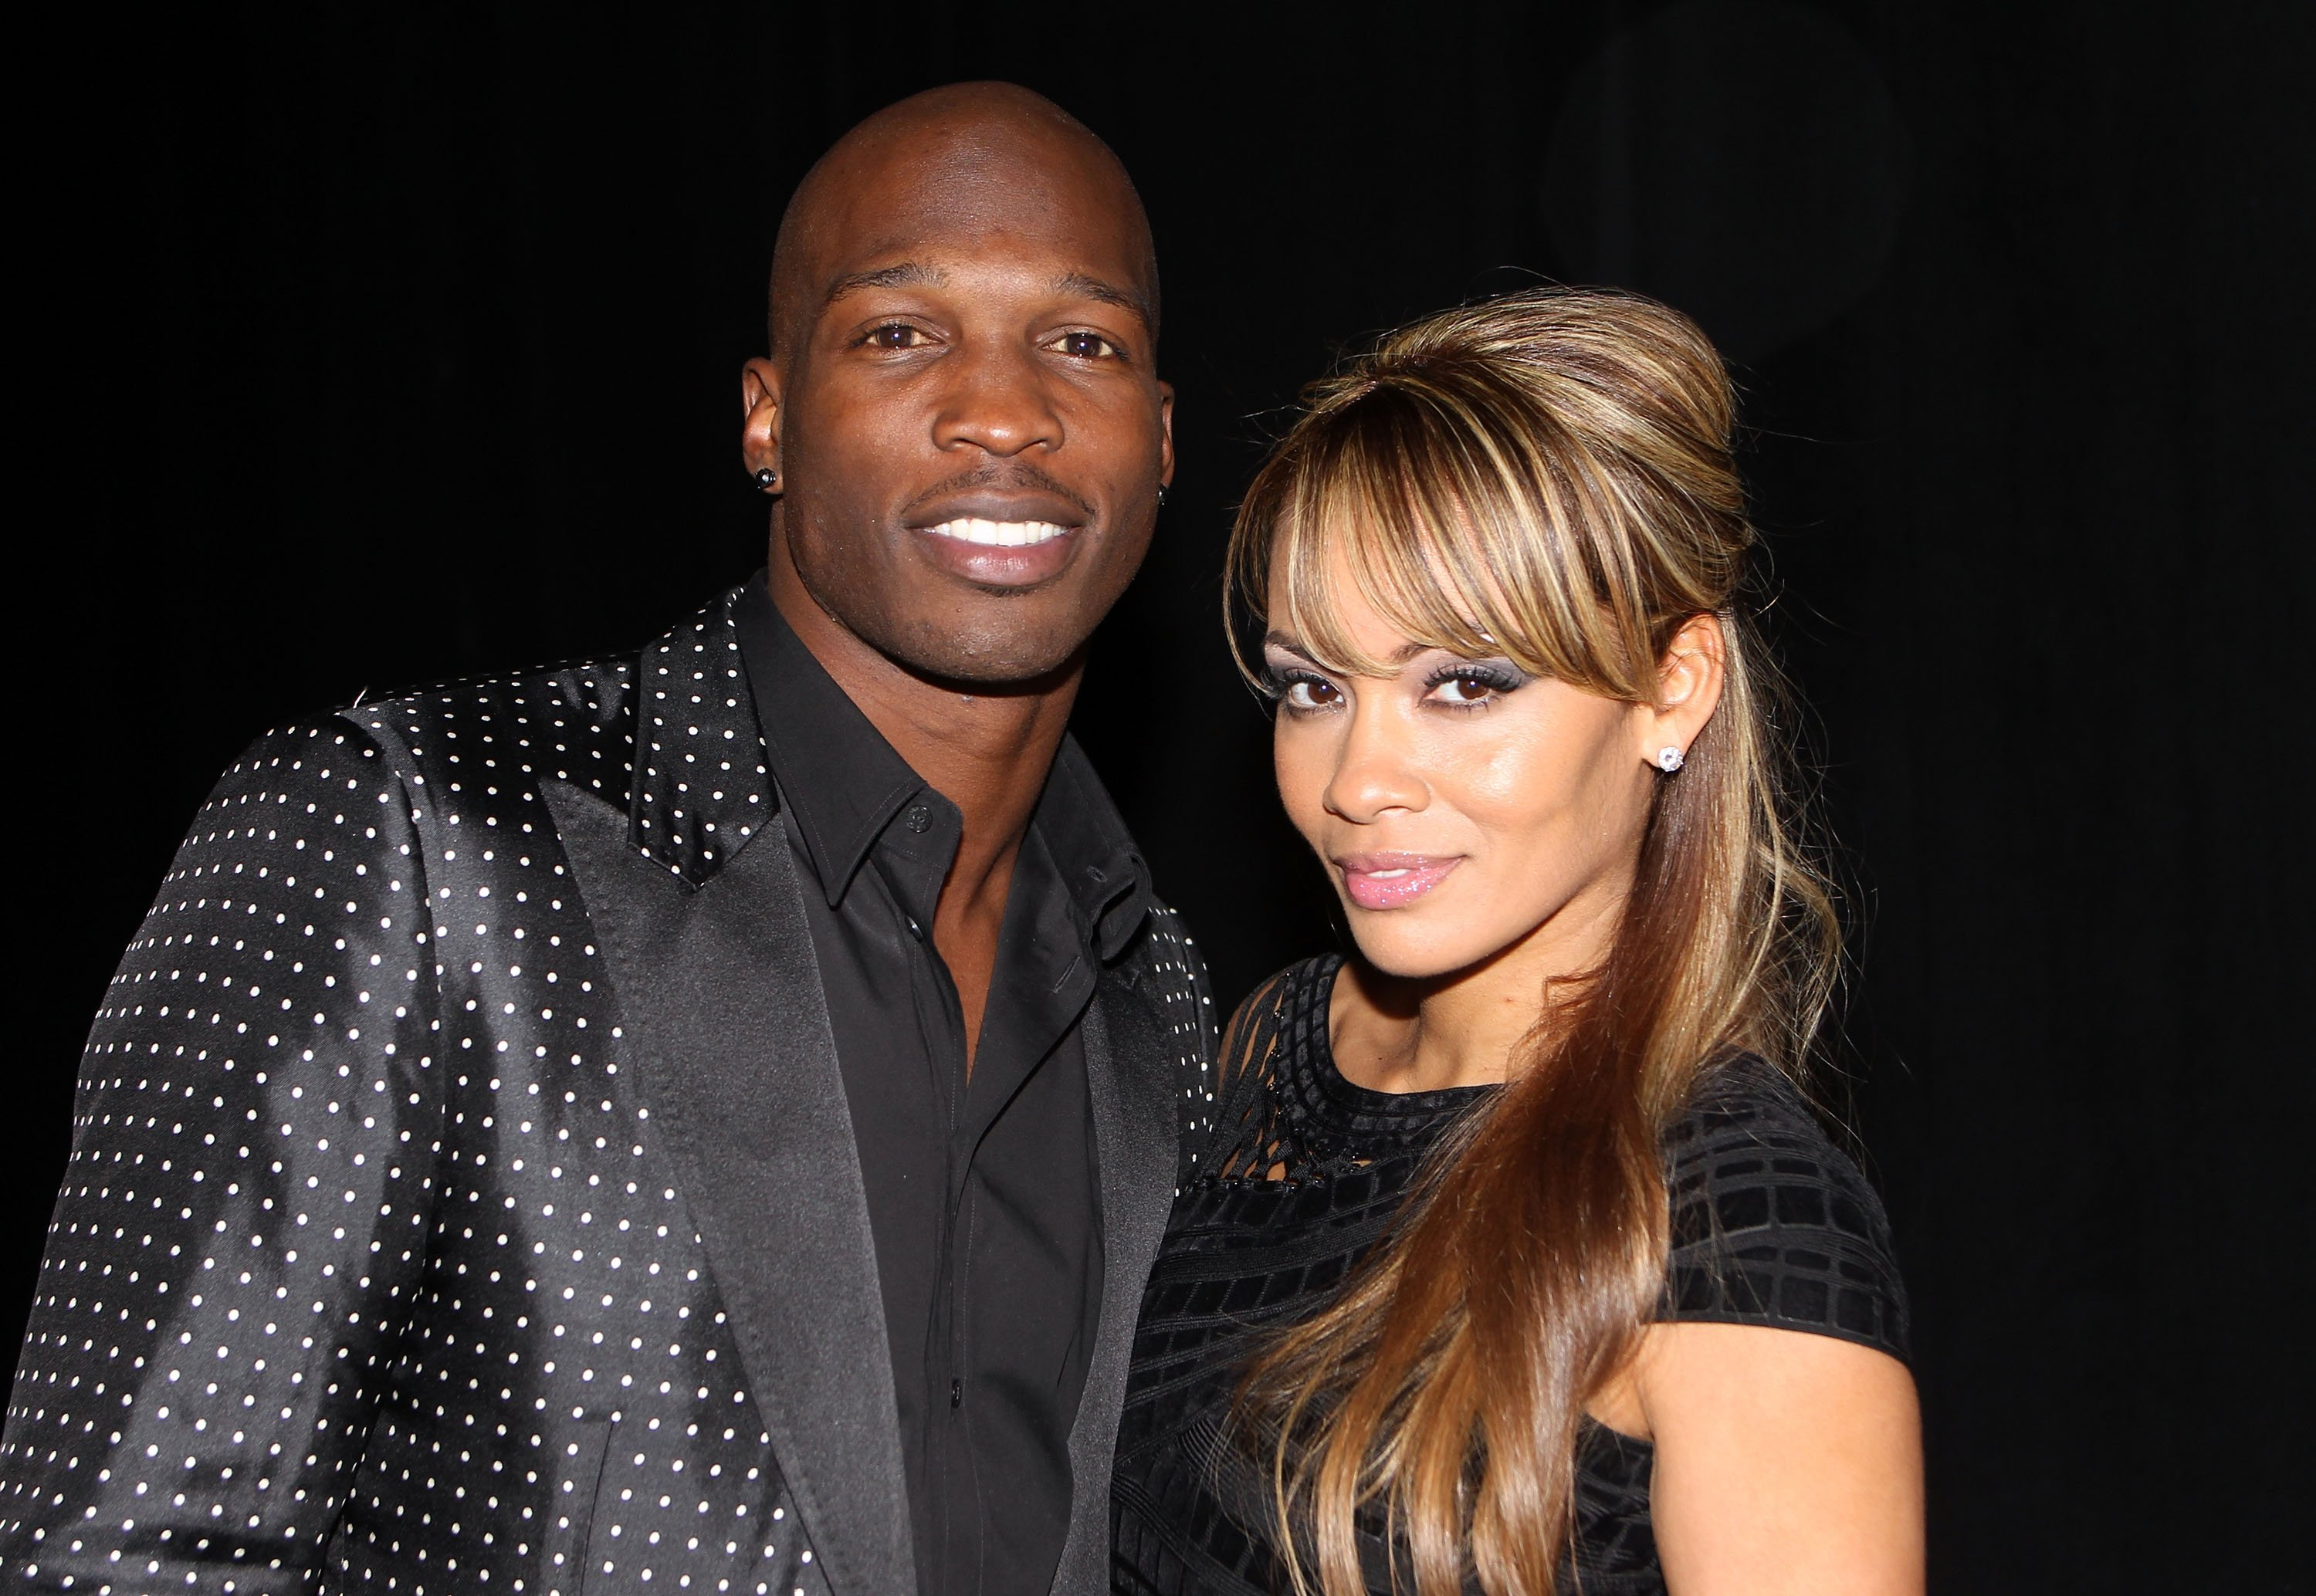 Chad Ochocinco and Evelyn Lozada at the Maxim Party at Centennial Hall at Fair Park on February 5, 2011 in Dallas, Texas | Photo: Getty Images